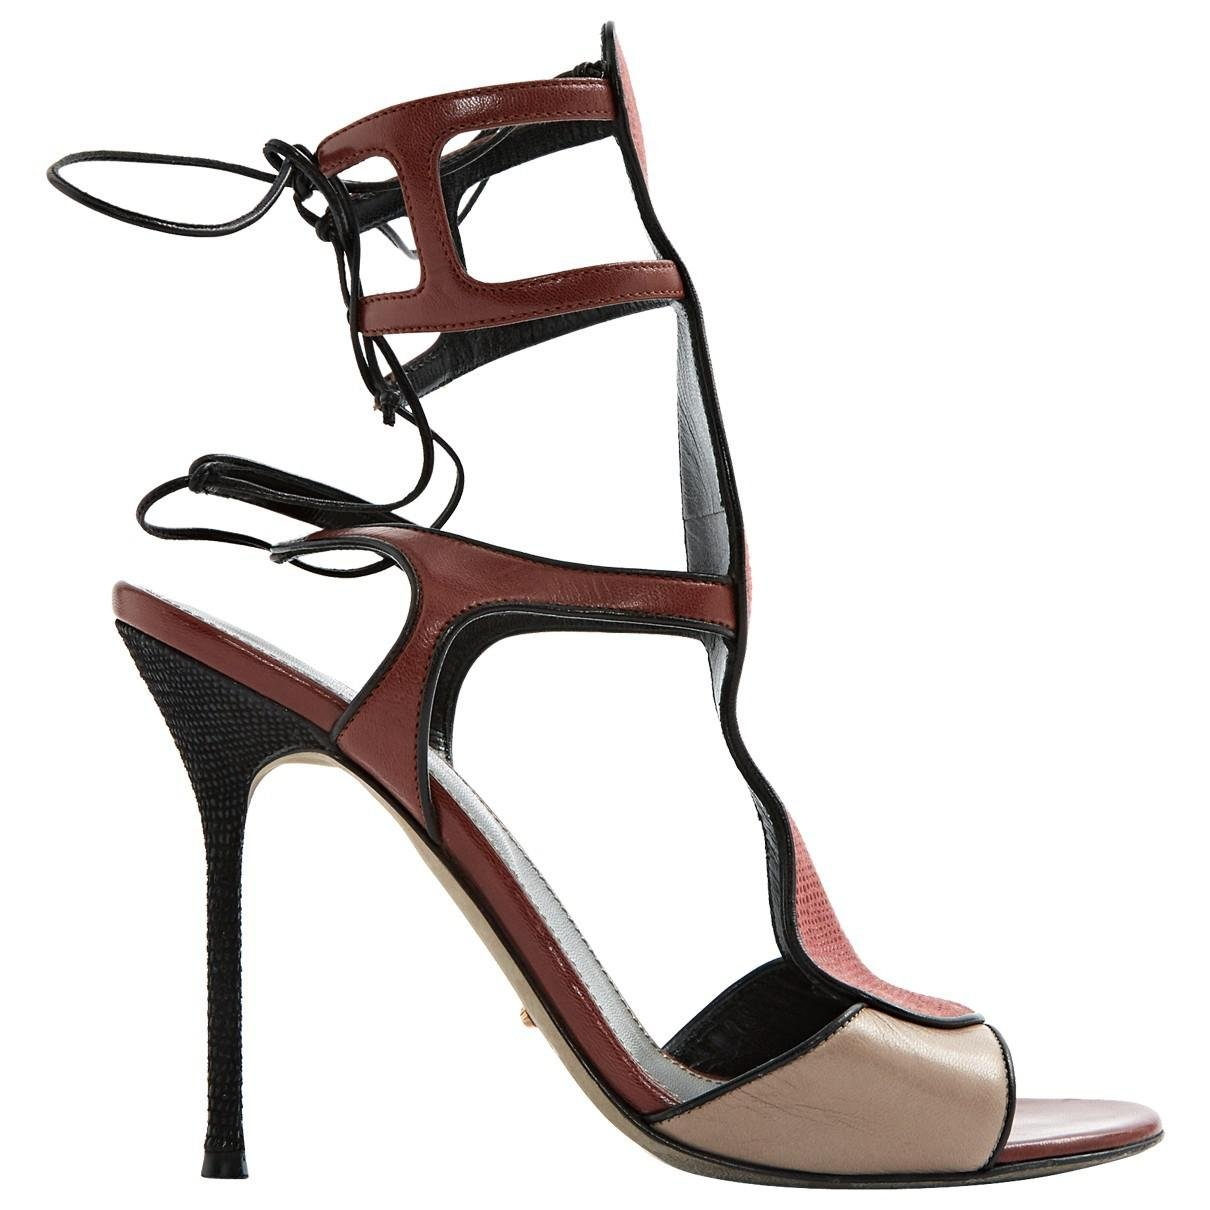 Pre-owned - Leather sandals Sergio Rossi nDOzyi